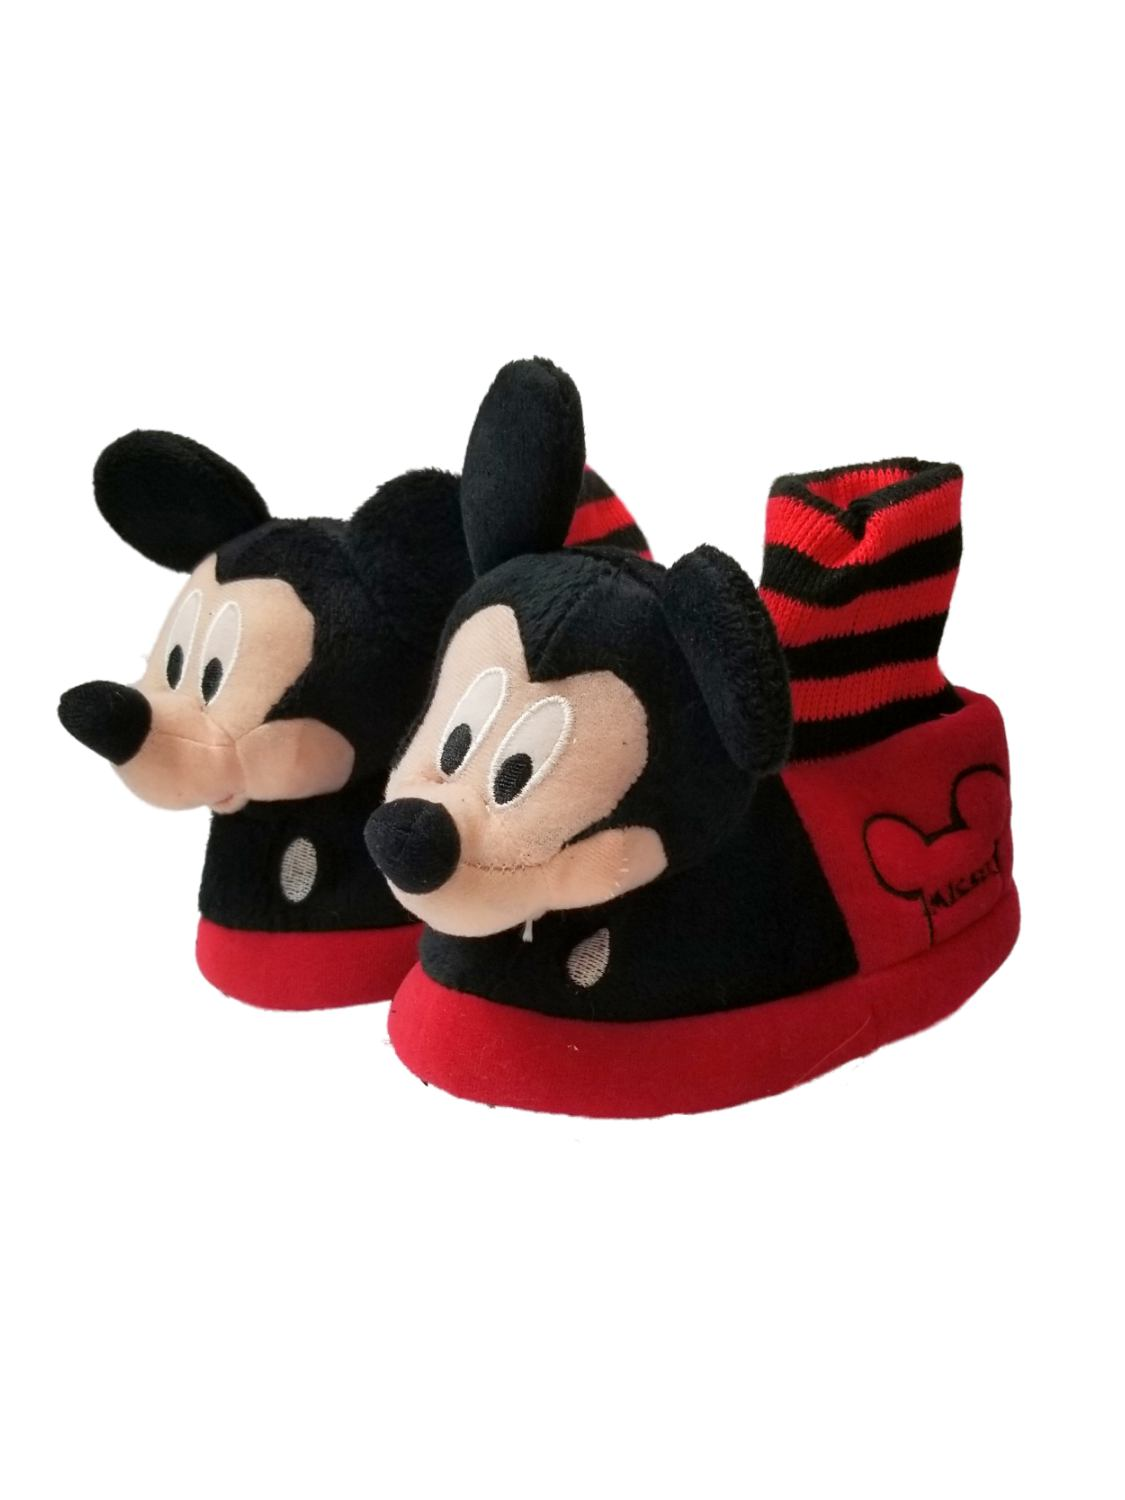 Disney Mickey Mouse Little Boys Slippers 7-8 Red//Black